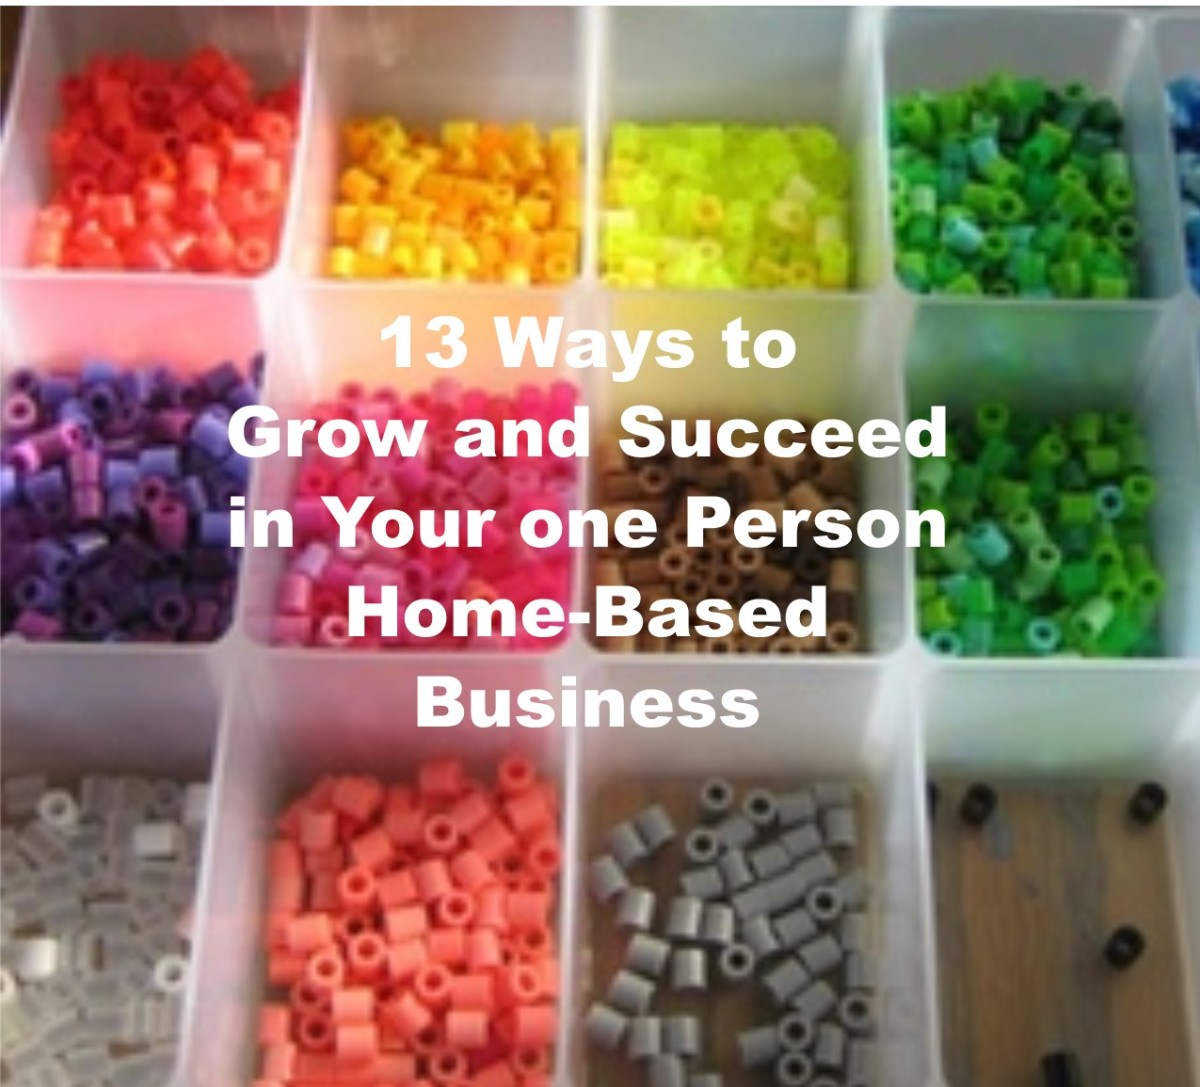 13 Ways to Grow and Succeed in Your One-Person Home-Based Business